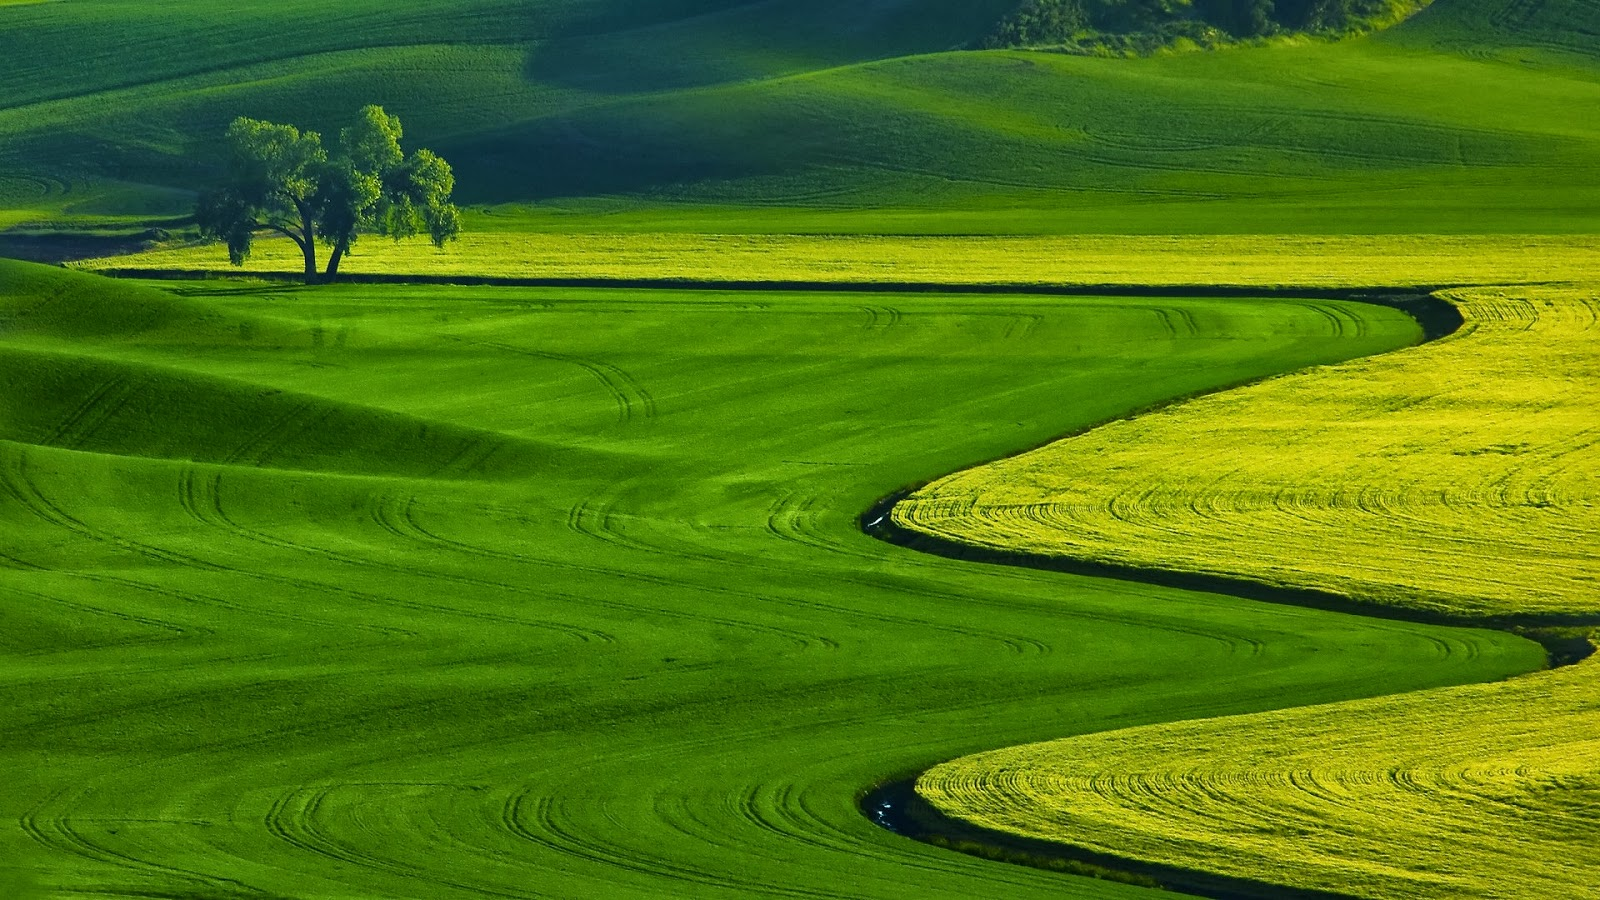 Full HD Nature Wallpapers Download For Laptop PC Desktop 1600x900